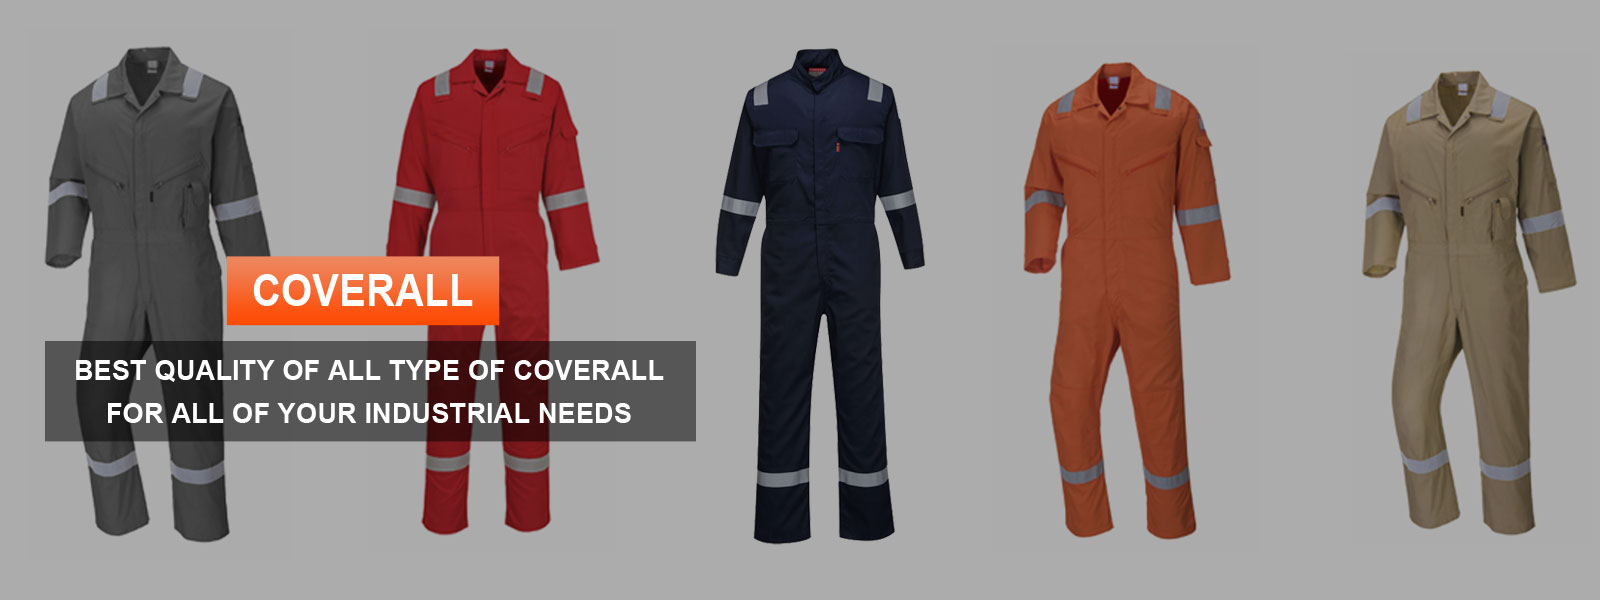 Coverall Manufacturers in Sao tome and principe